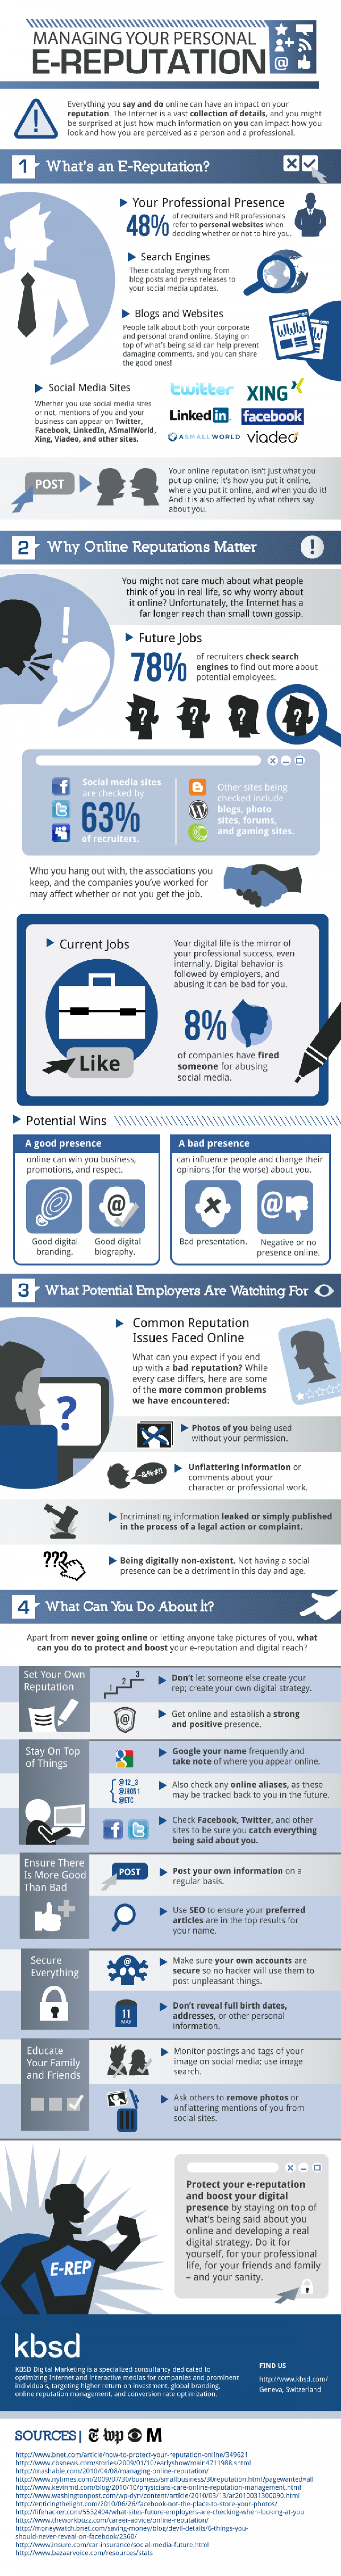 Managing  Your Personal E-Reputation Infographic